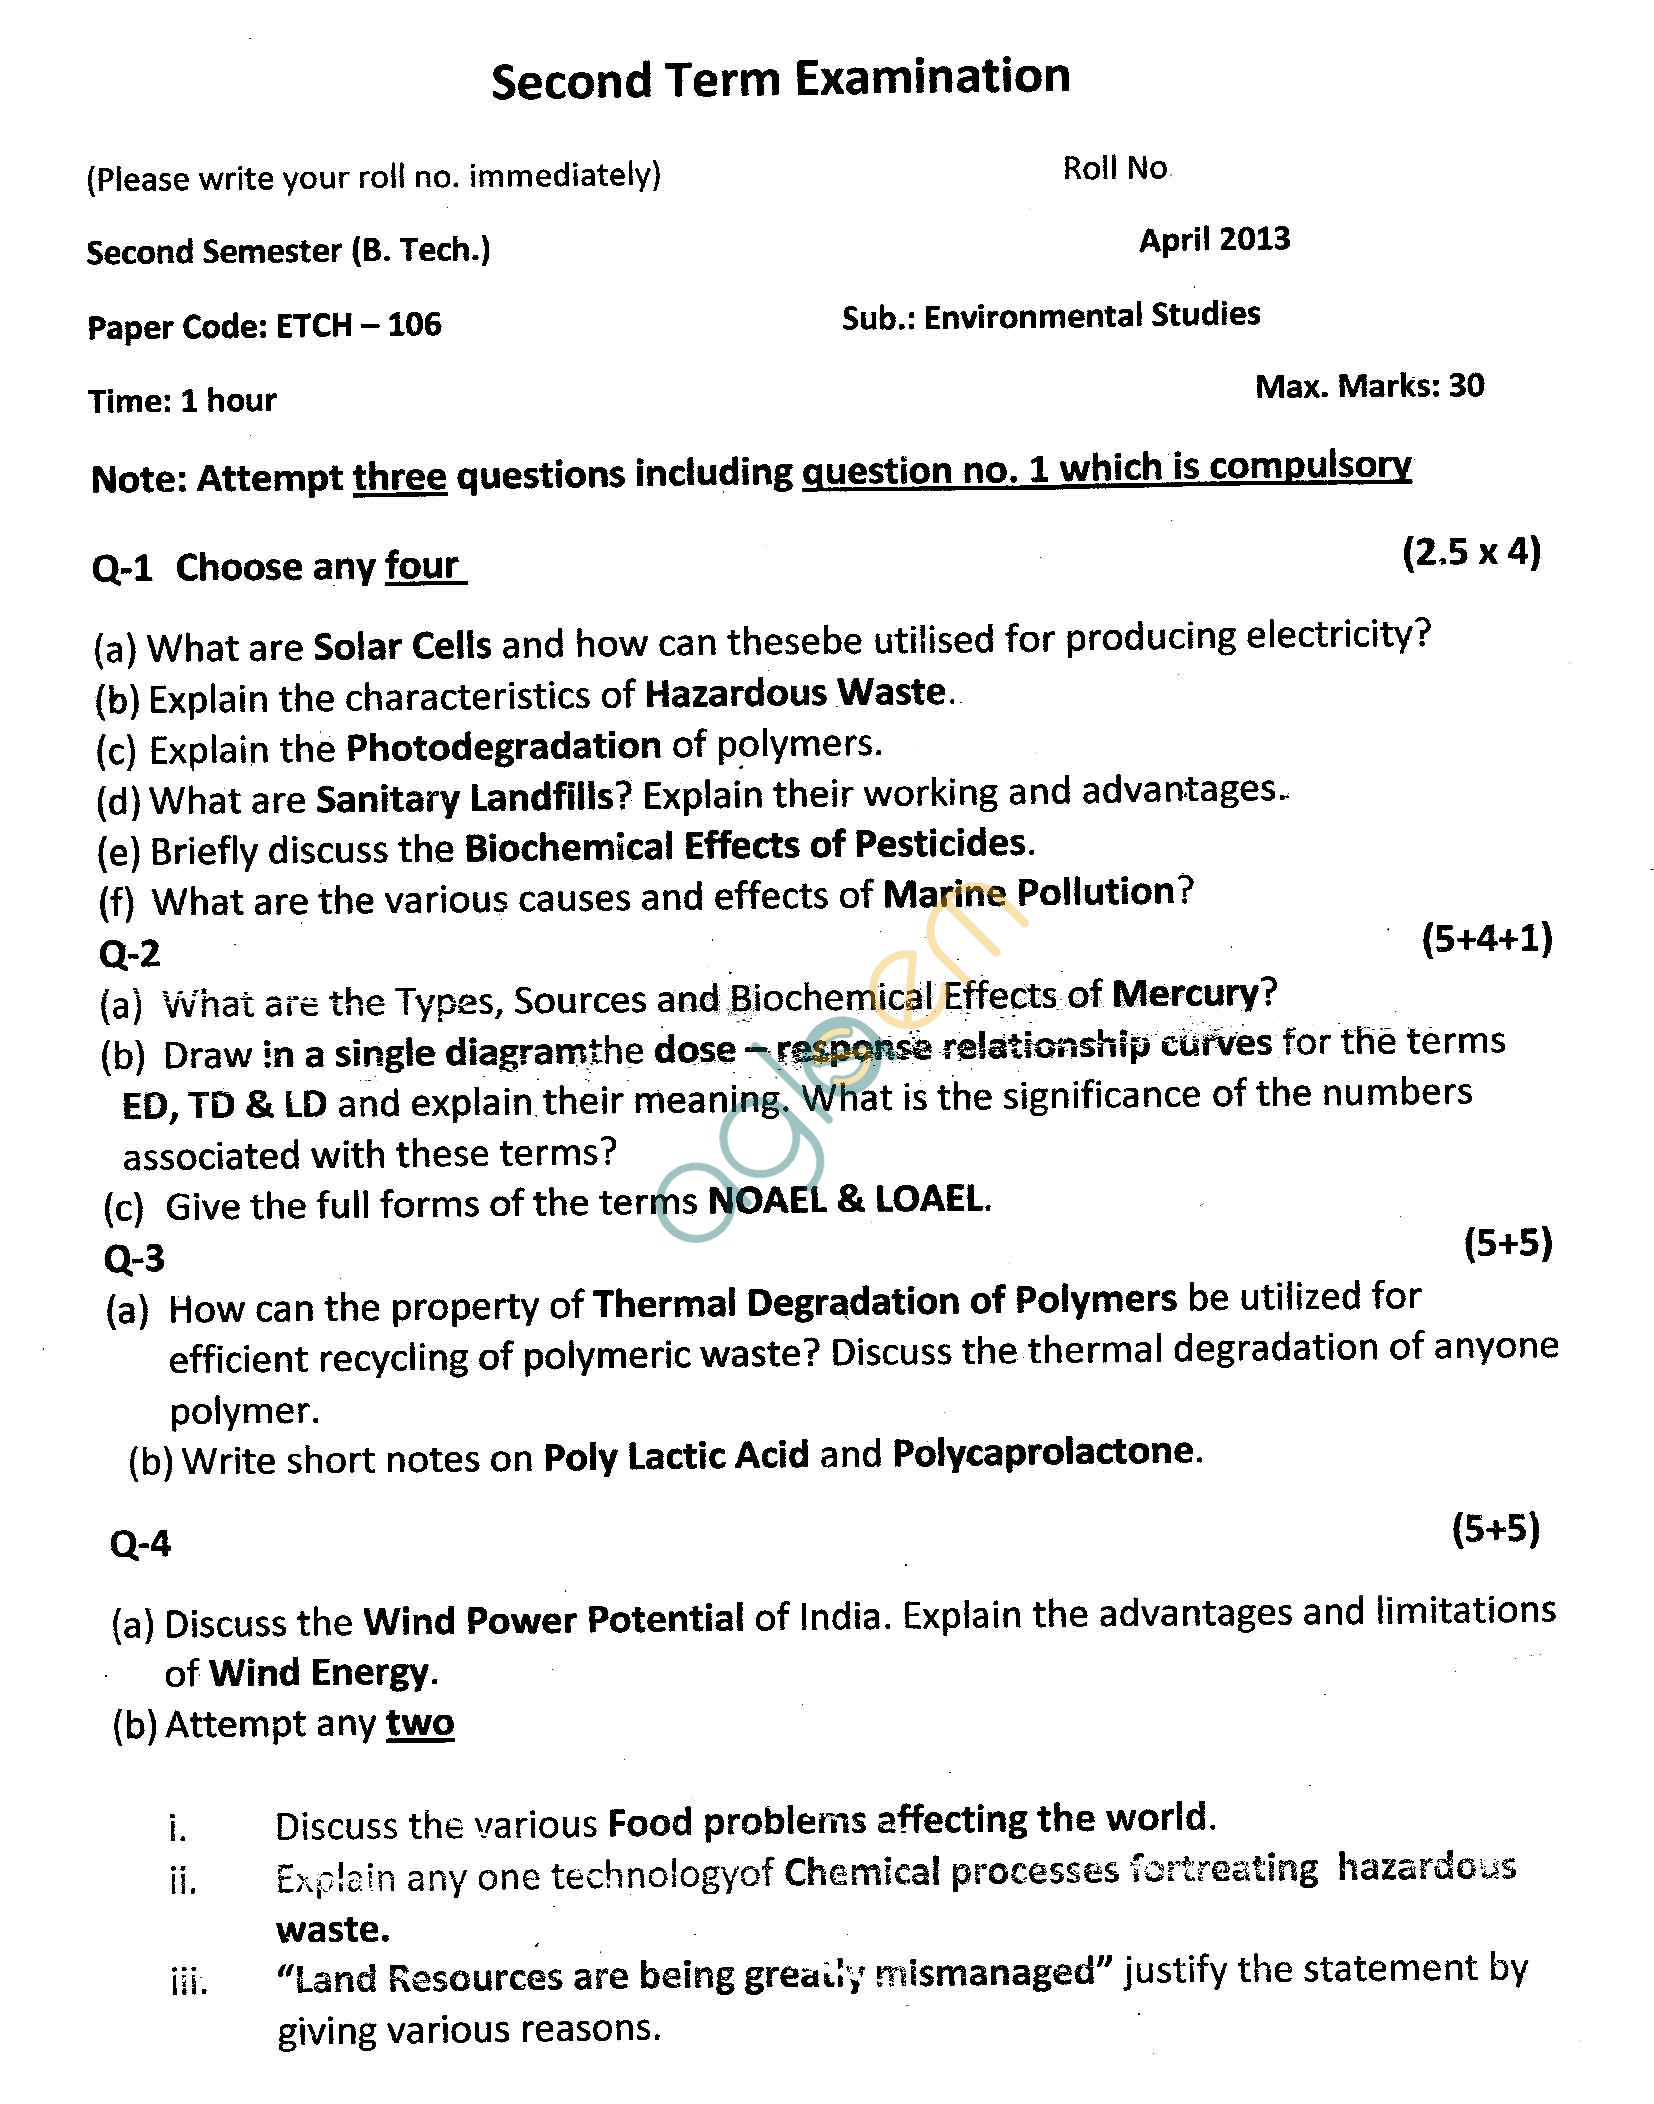 GGSIPU Question Papers Second Semester – Second Term 2013 – ETCH-106